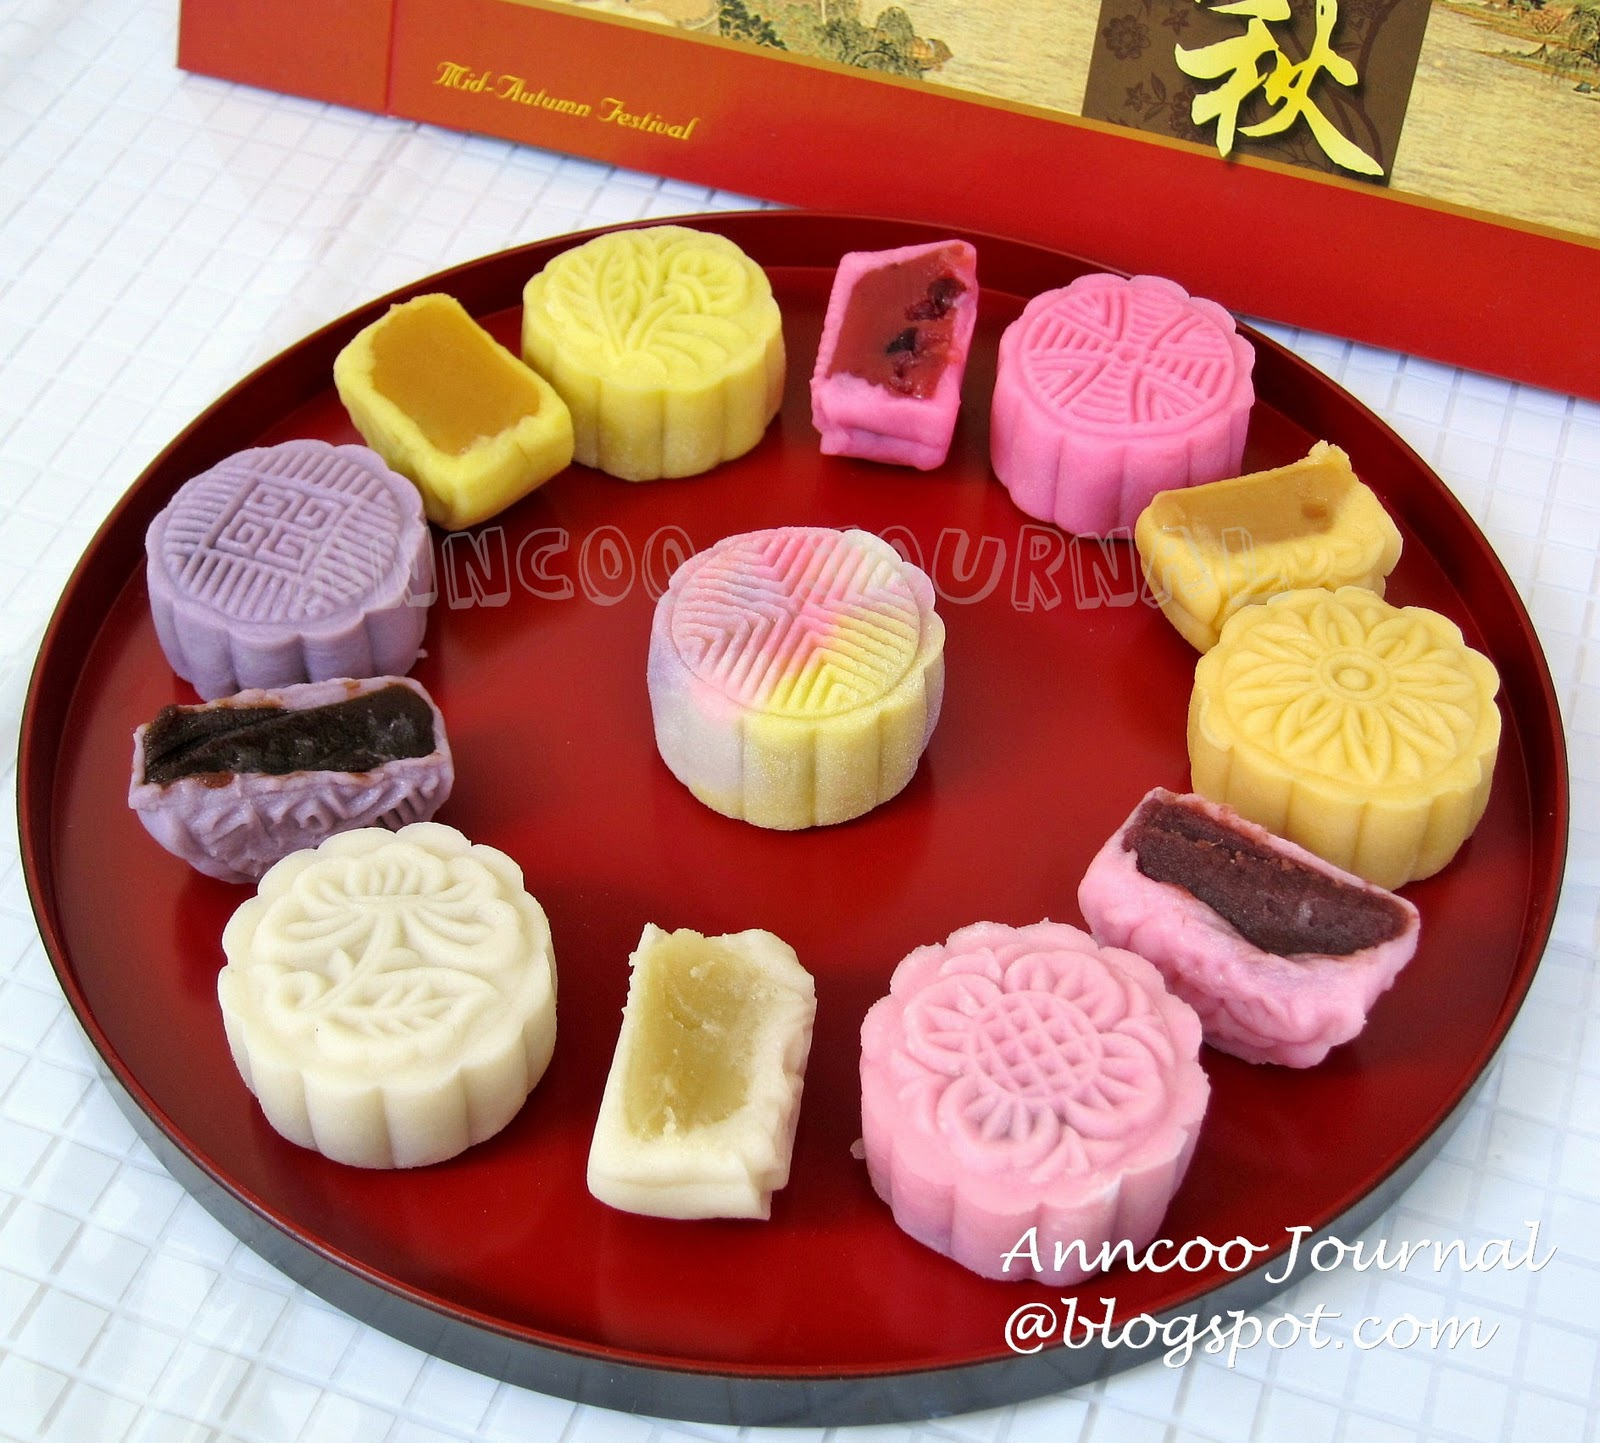 Easy Mooncake Images : Snow Skin Mooncake ???? (2010) - Anncoo Journal